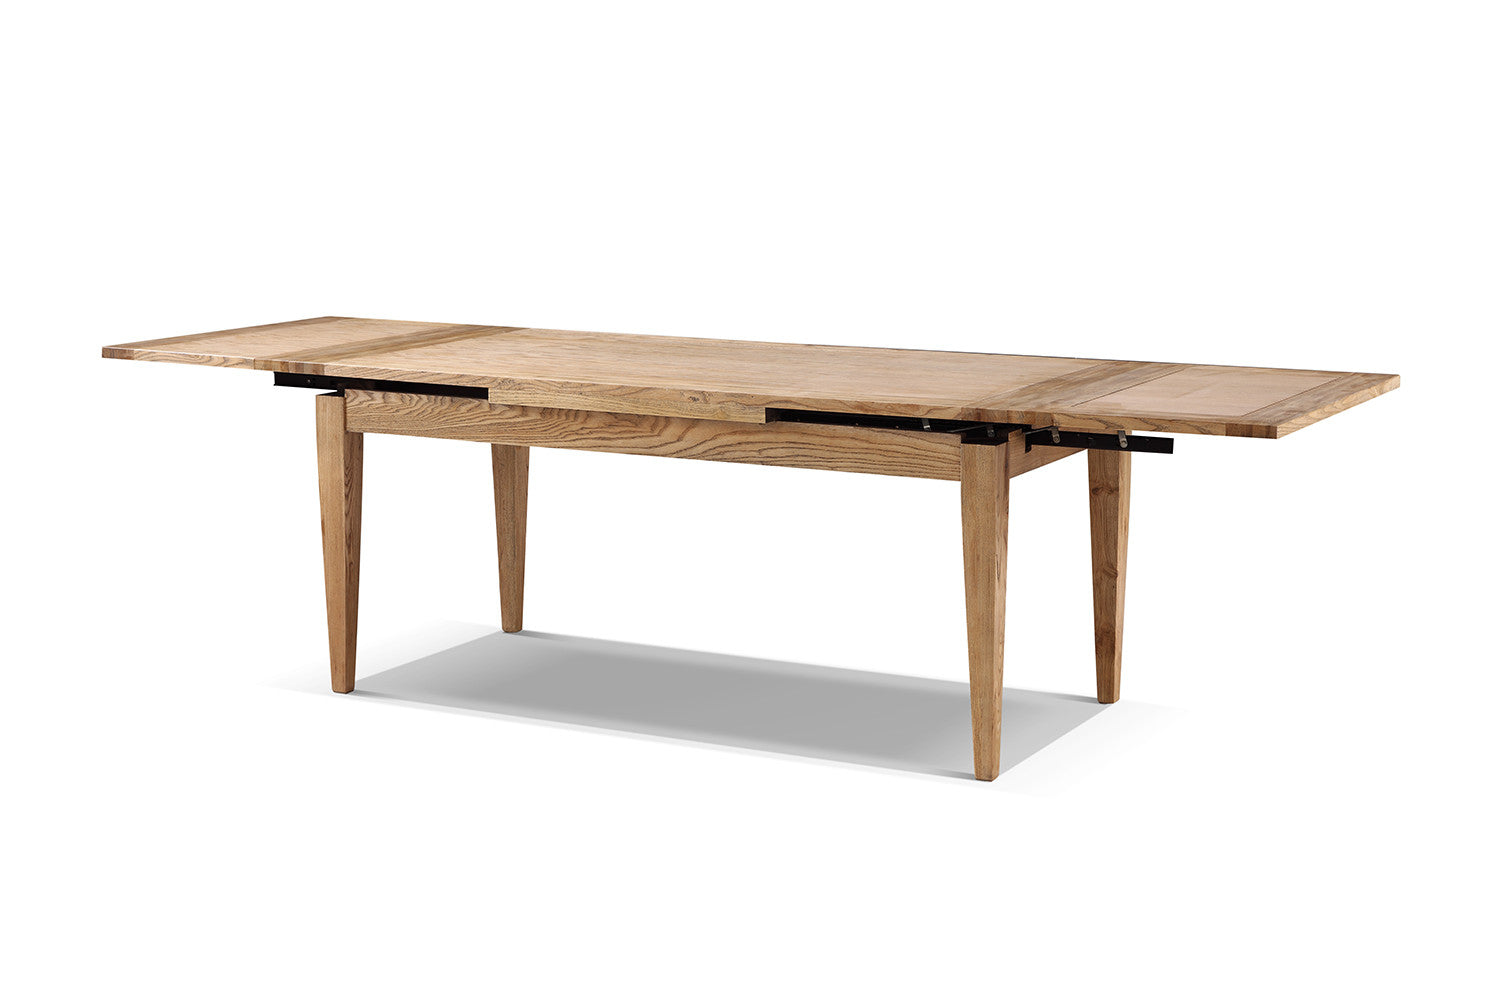 Table manger bois table a manger en bois moderne table for Table a manger en bois moderne